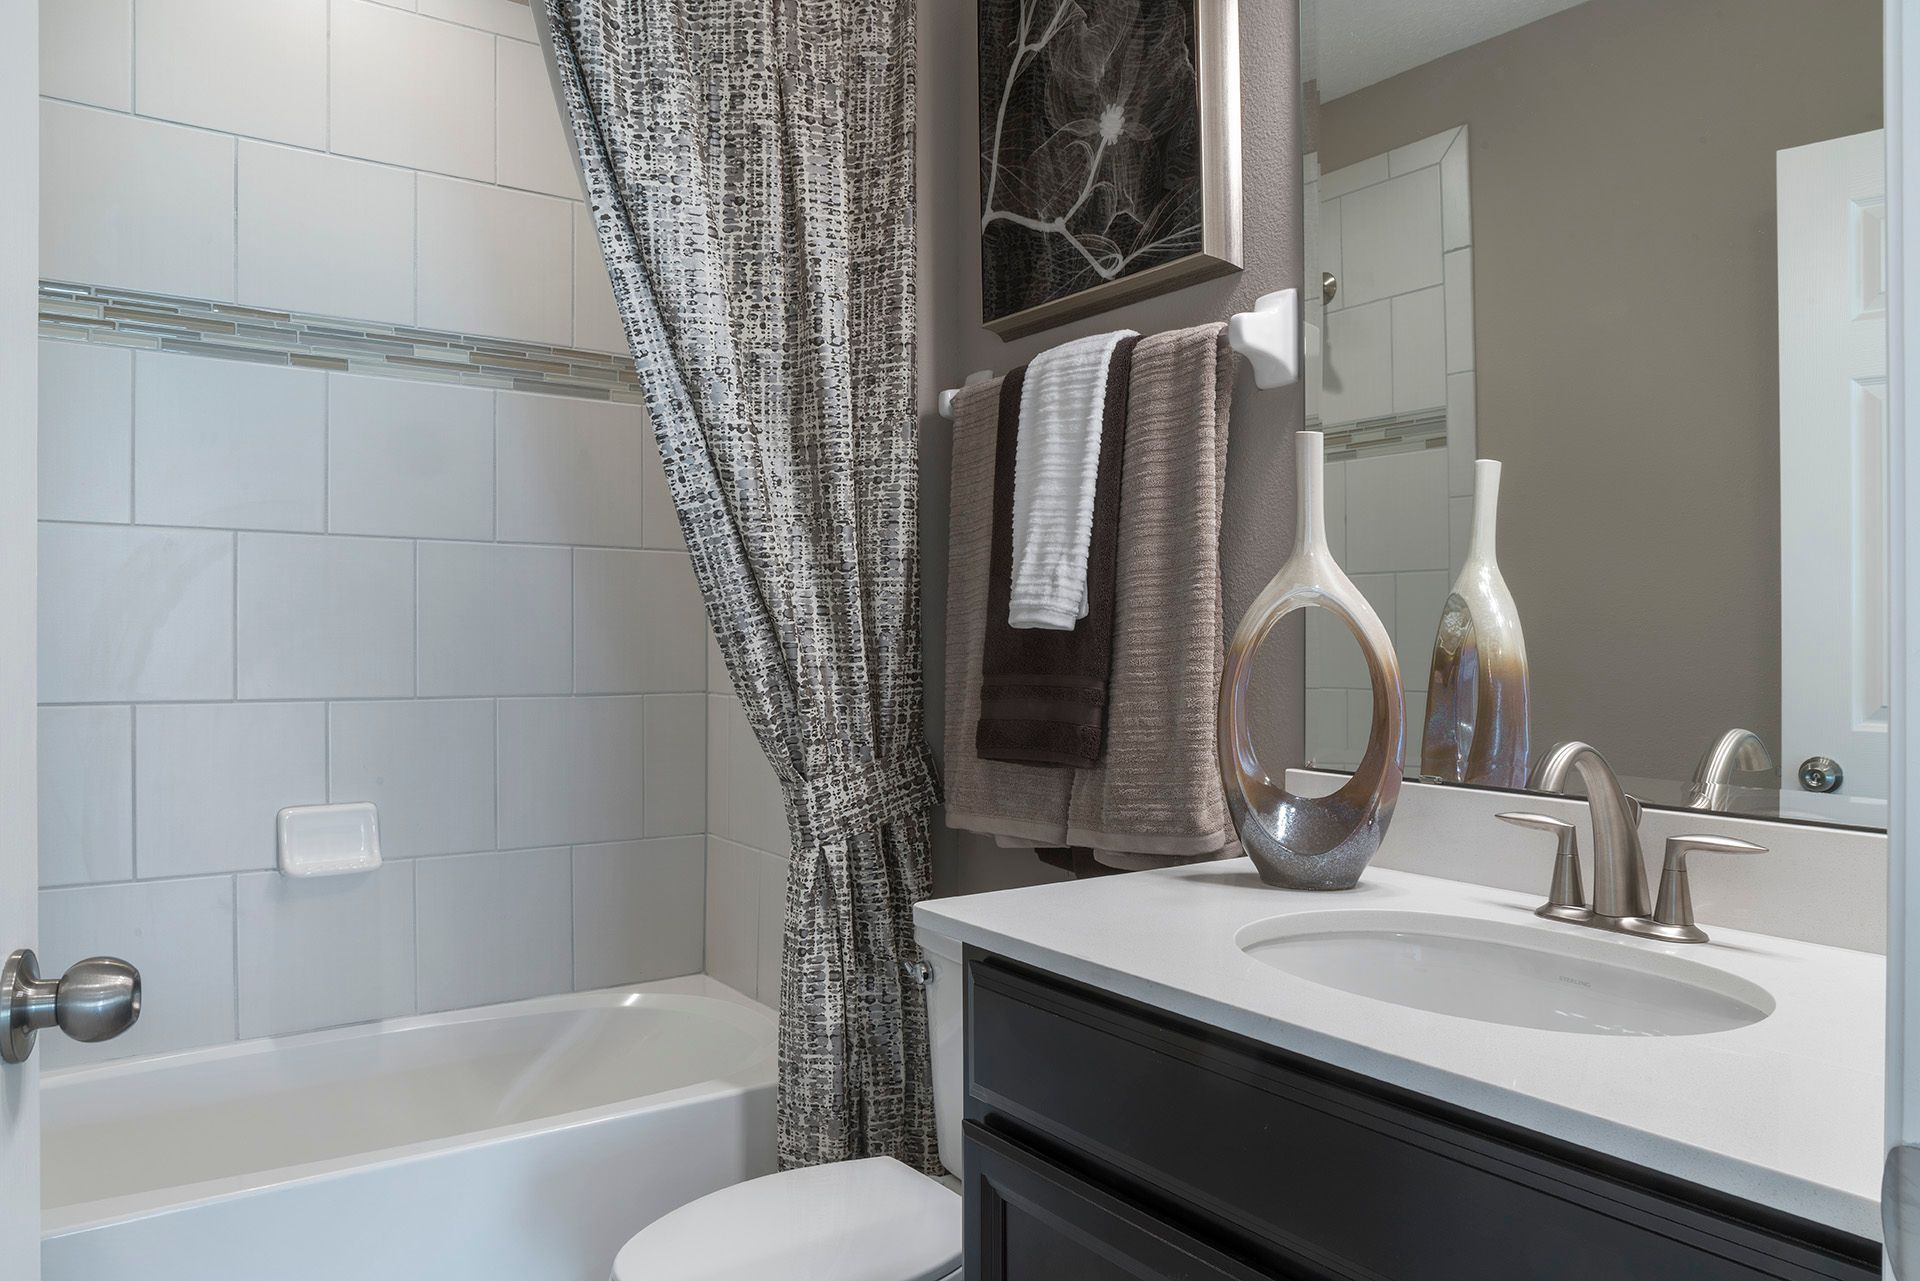 Bathroom featured in the Wilshire By Hanover Family Builders in Orlando, FL